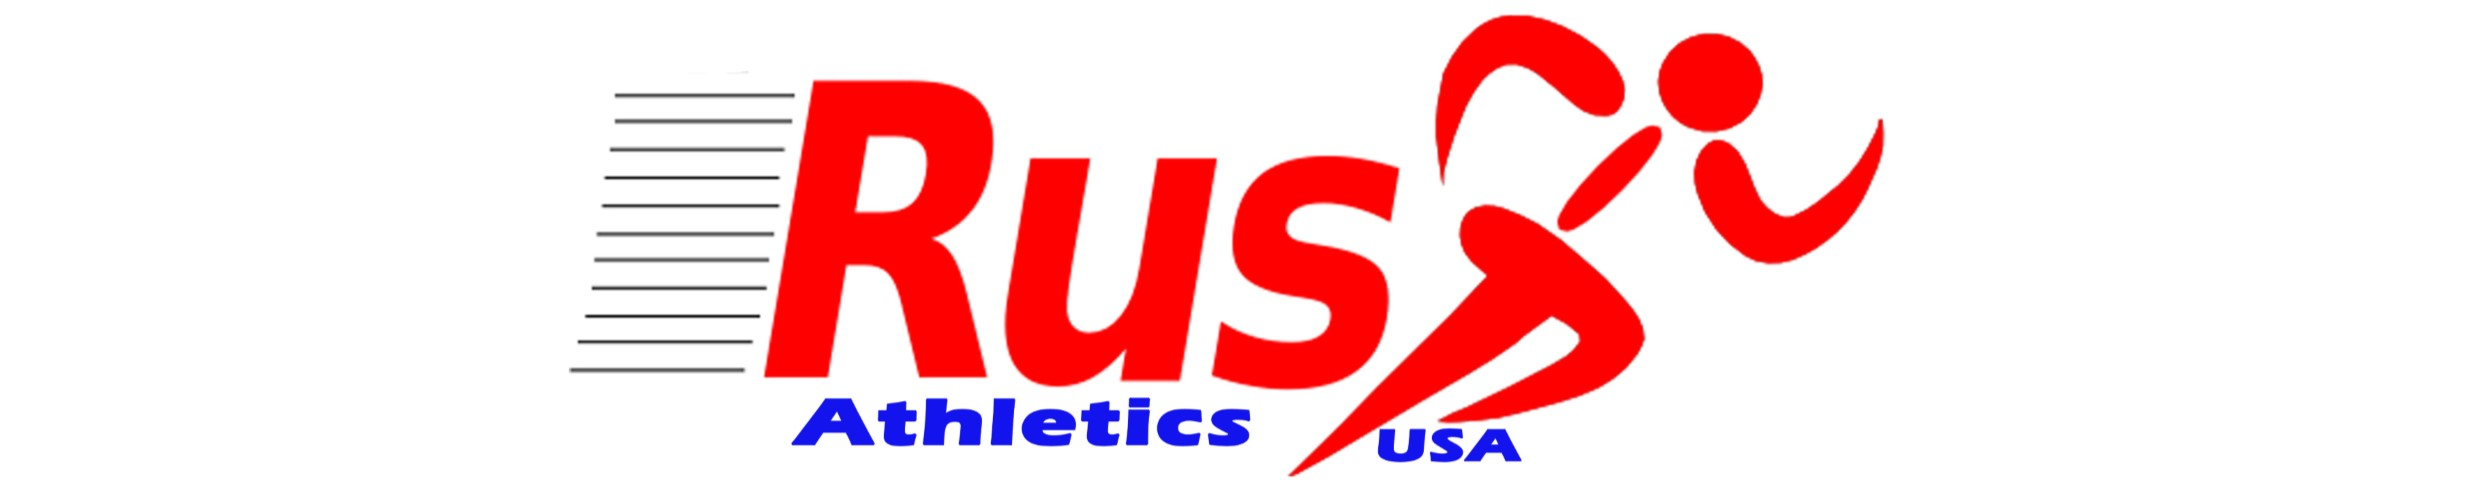 Rush Athletics USA, Track & Field , Goal, Field